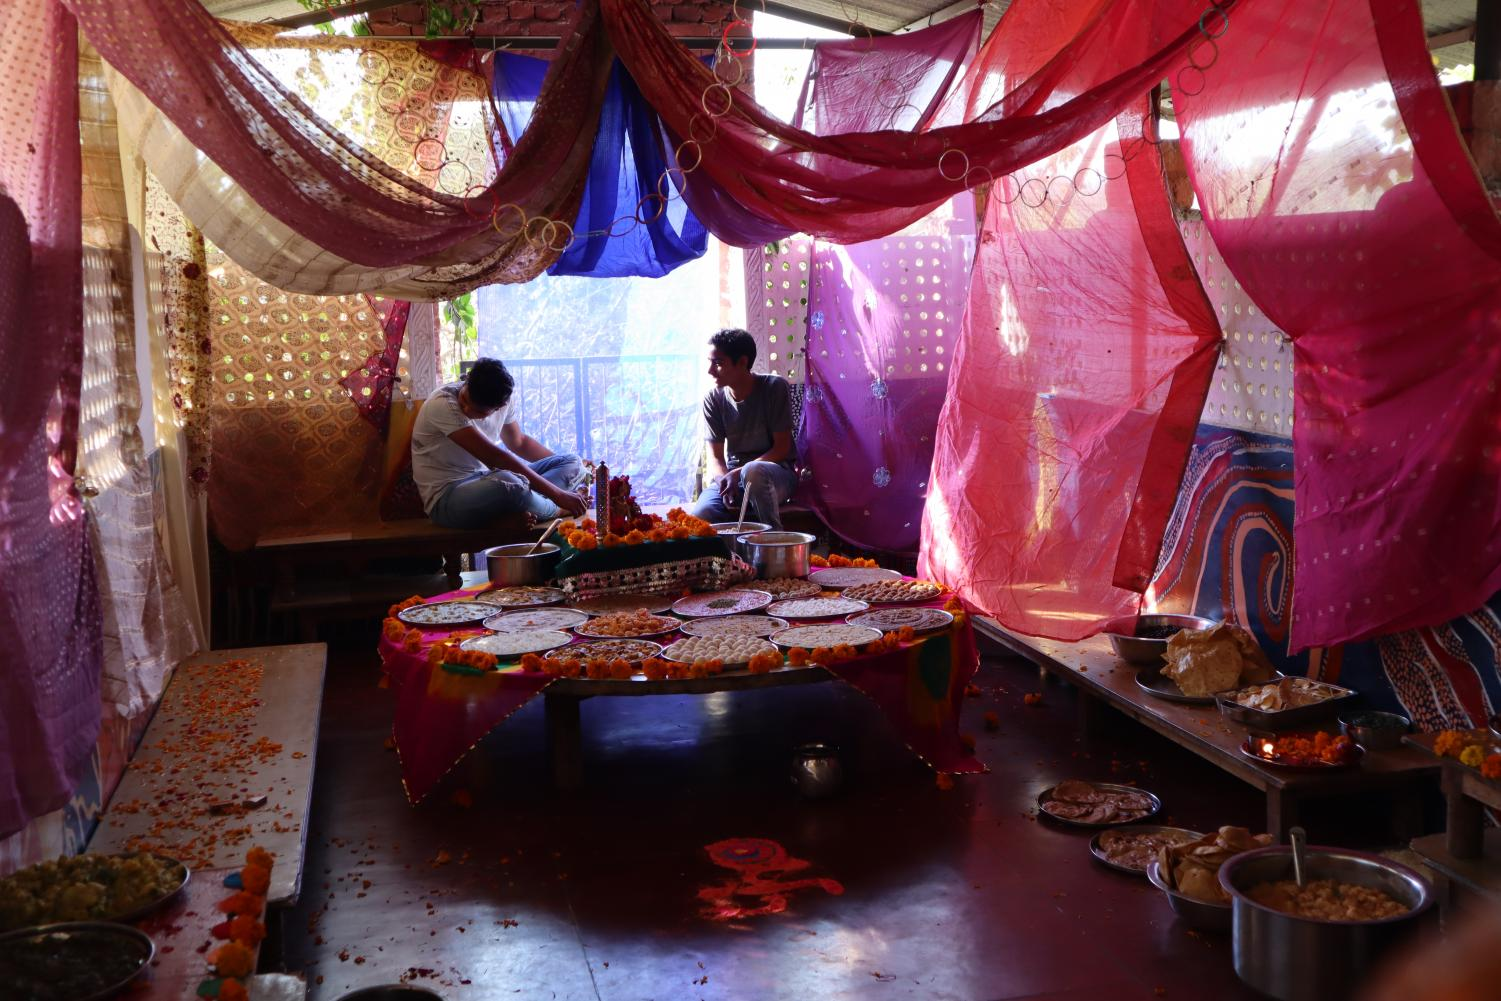 Students+at+Vatsalya+sit+in+a+room+covered+with+various+Colorful+fabrics.+Archer+has+worked+with+Vatsalya+for+around+two+years%2C+chaperone+Stefanie+Daehler+said.+